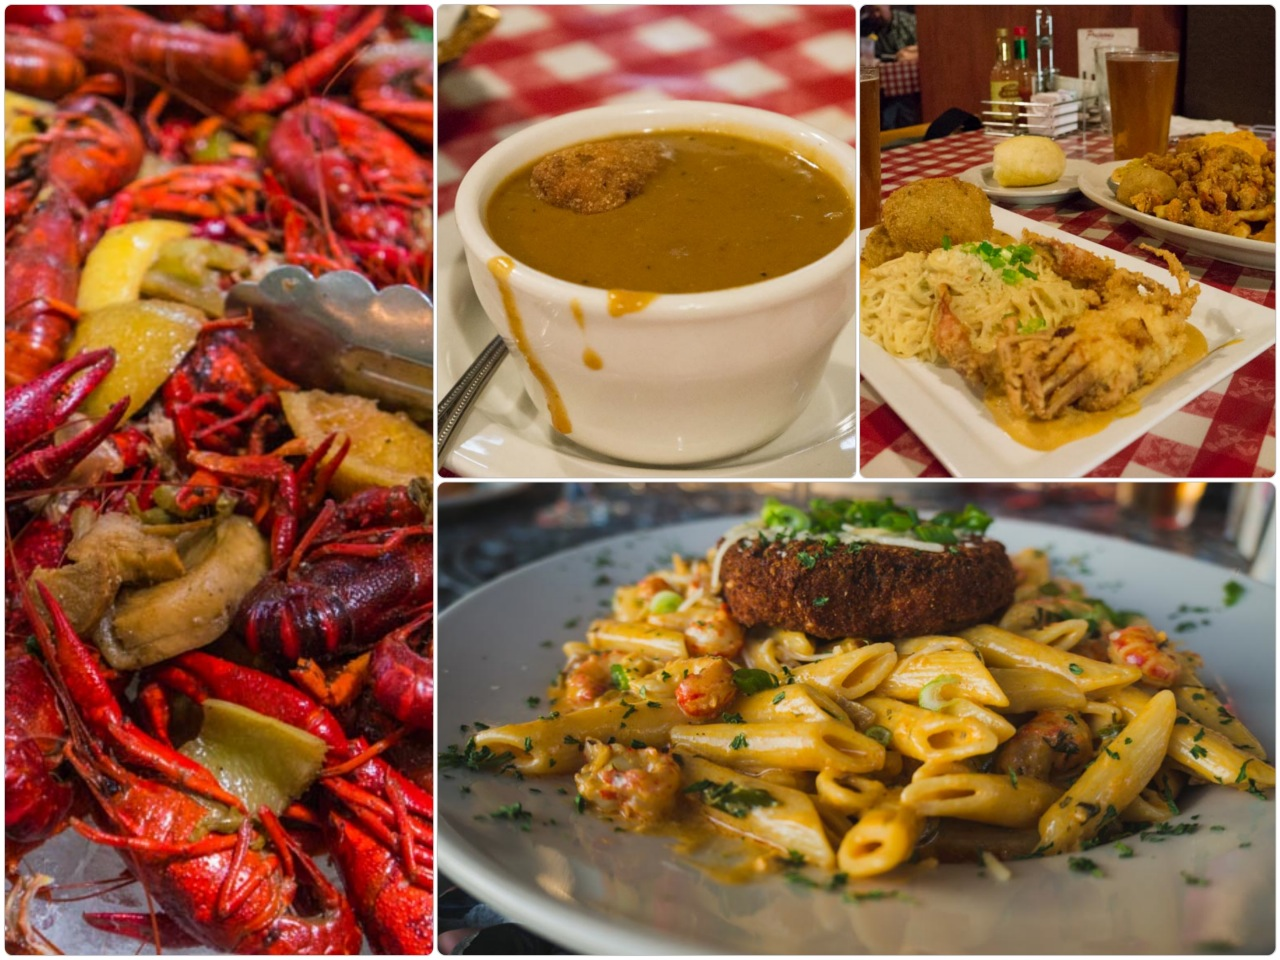 louisiana cuisine breaking down preconceived notions